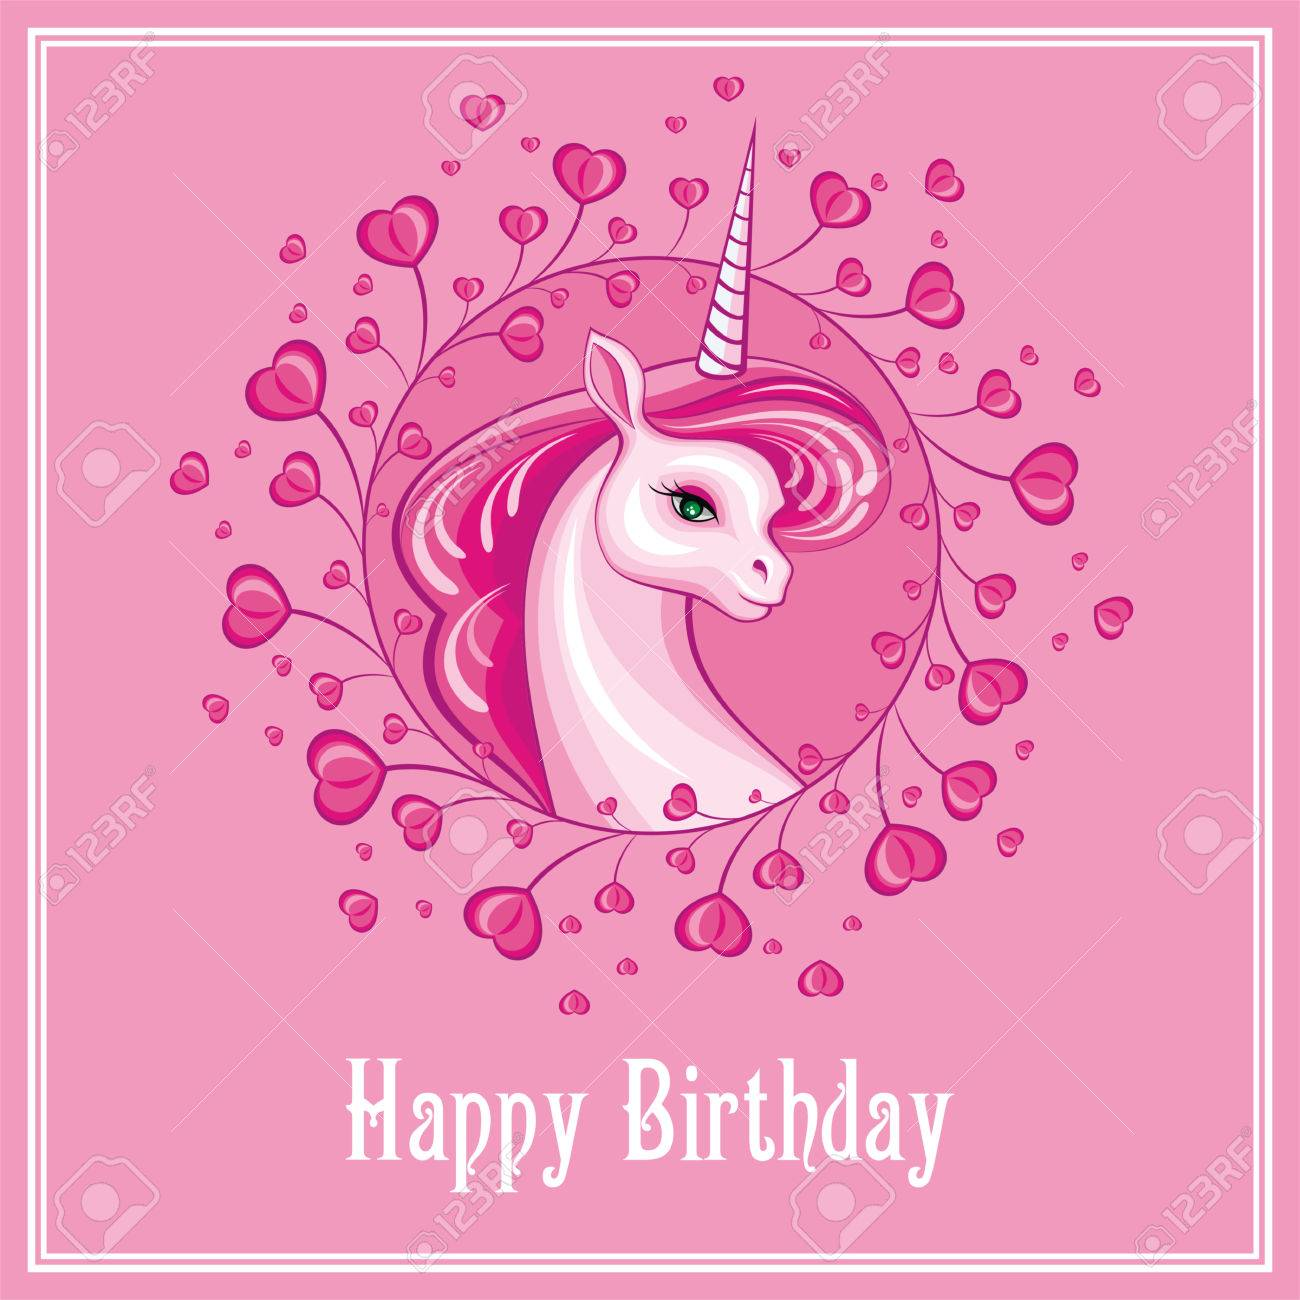 Happy Birthday Greeting Card With The Image Of A Beautiful Fantastic Royalty Free Cliparts Vectors And Stock Illustration Image 78274721